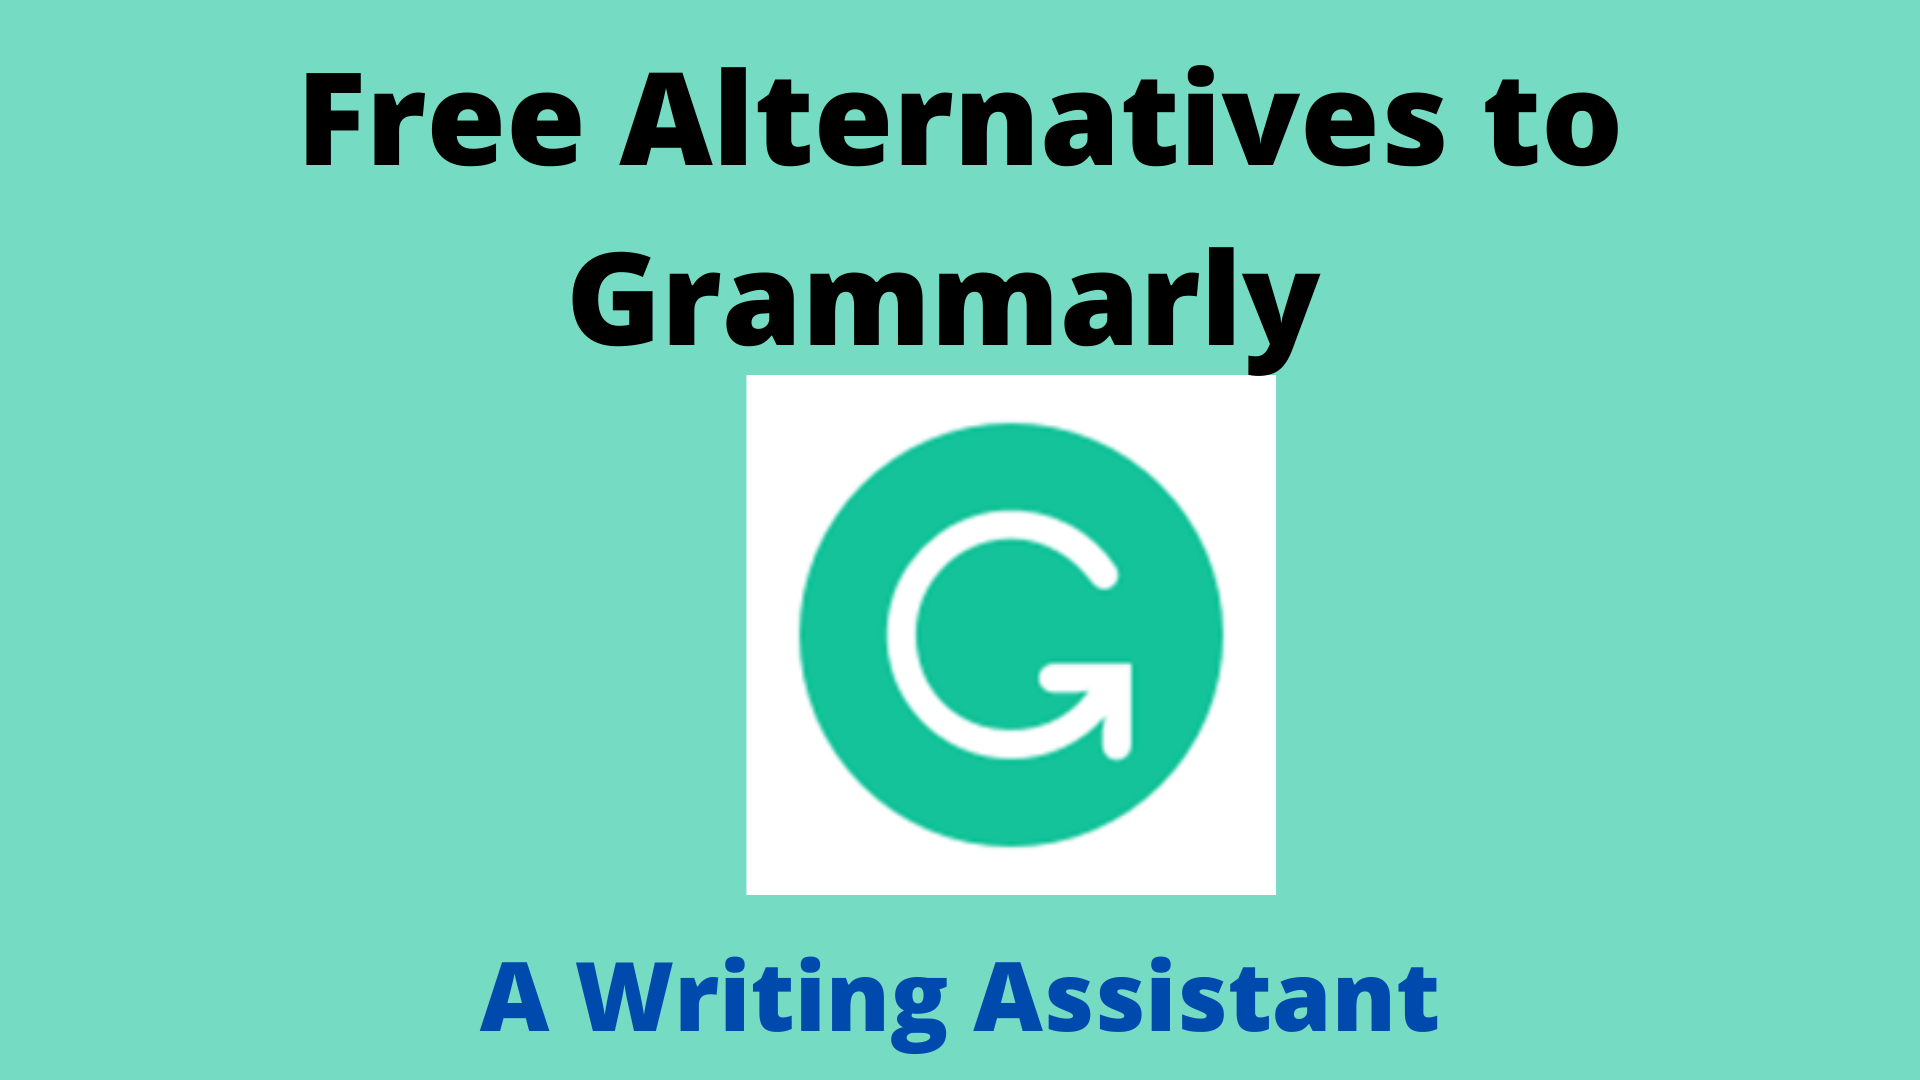 Free Alternatives to Grammarly Writing Assistant